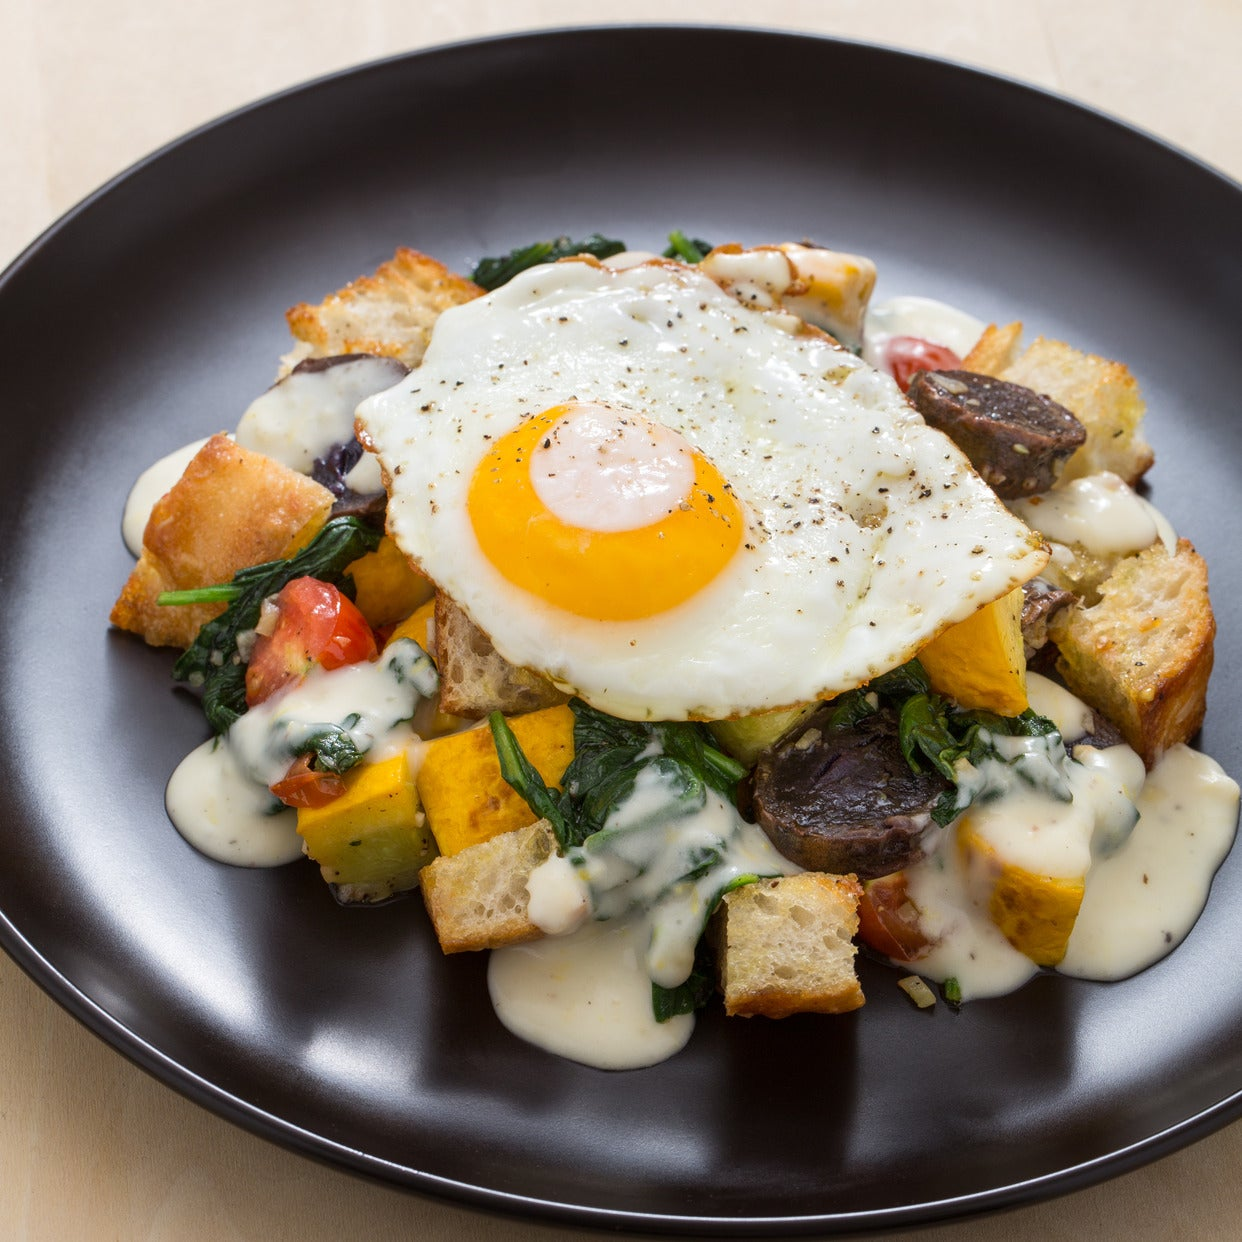 Fried Egg-Topped Summer Sauté  with Homemade Croutons & Parmesan Sauce